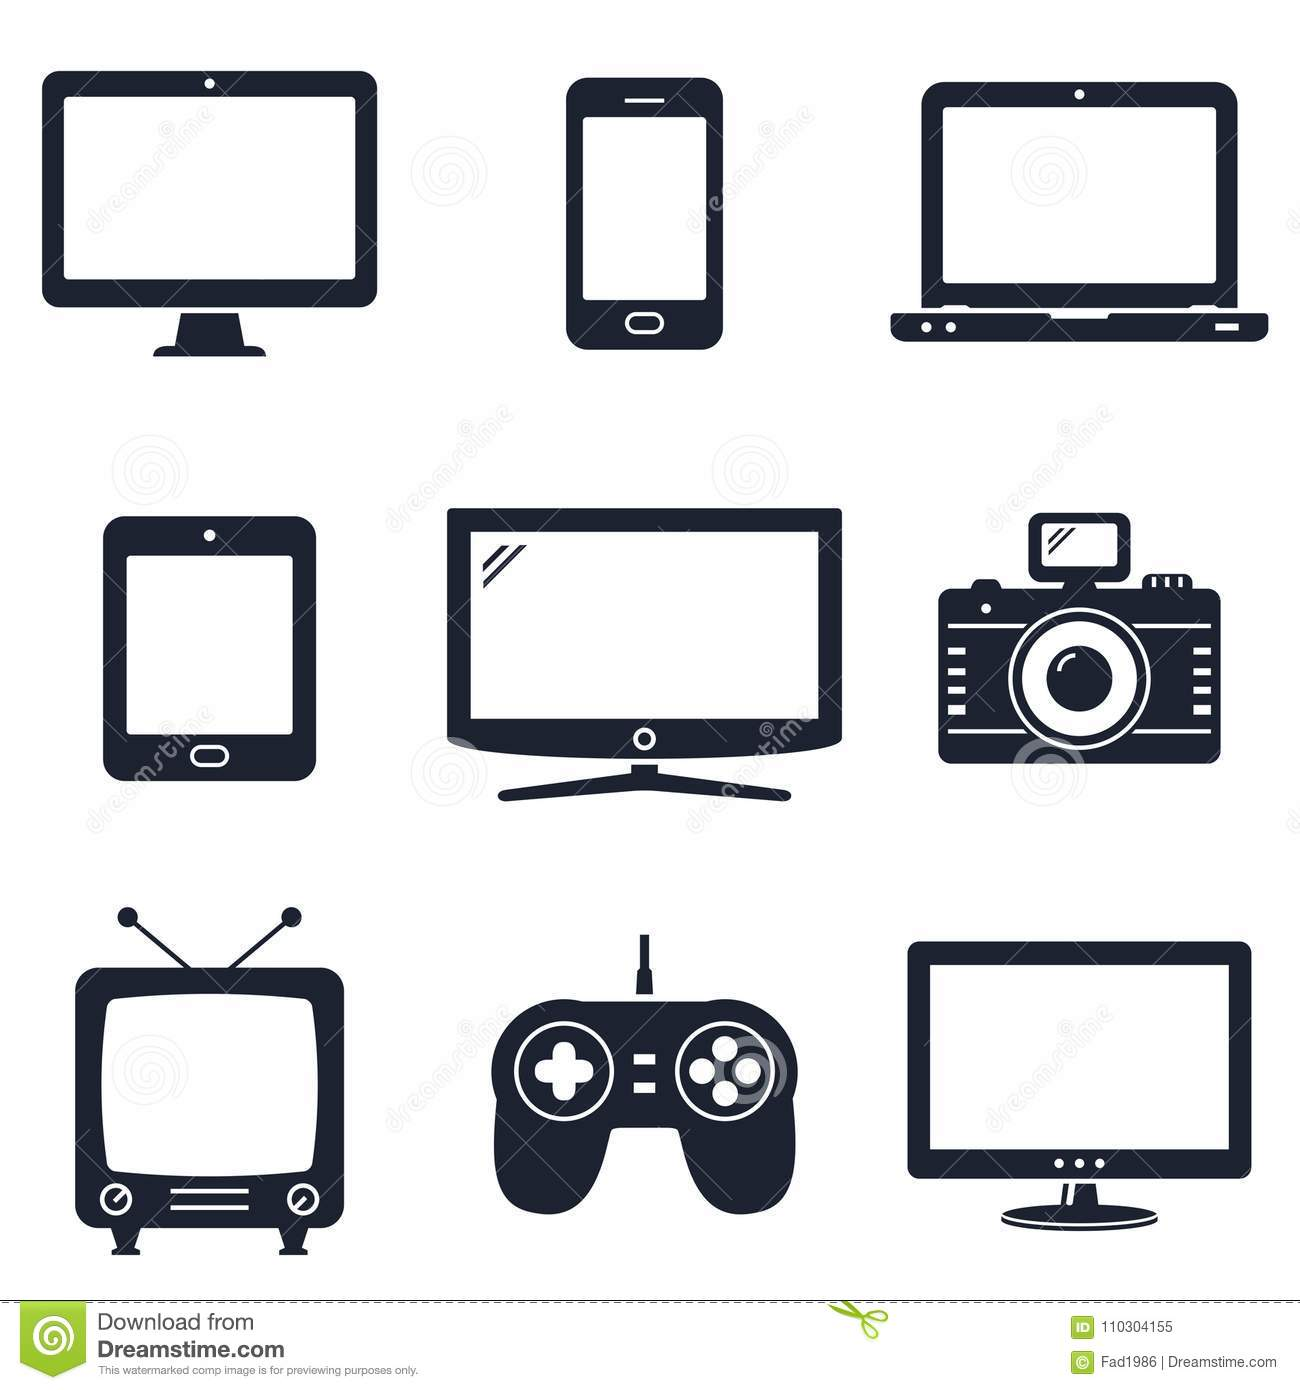 Modern technology devices icons